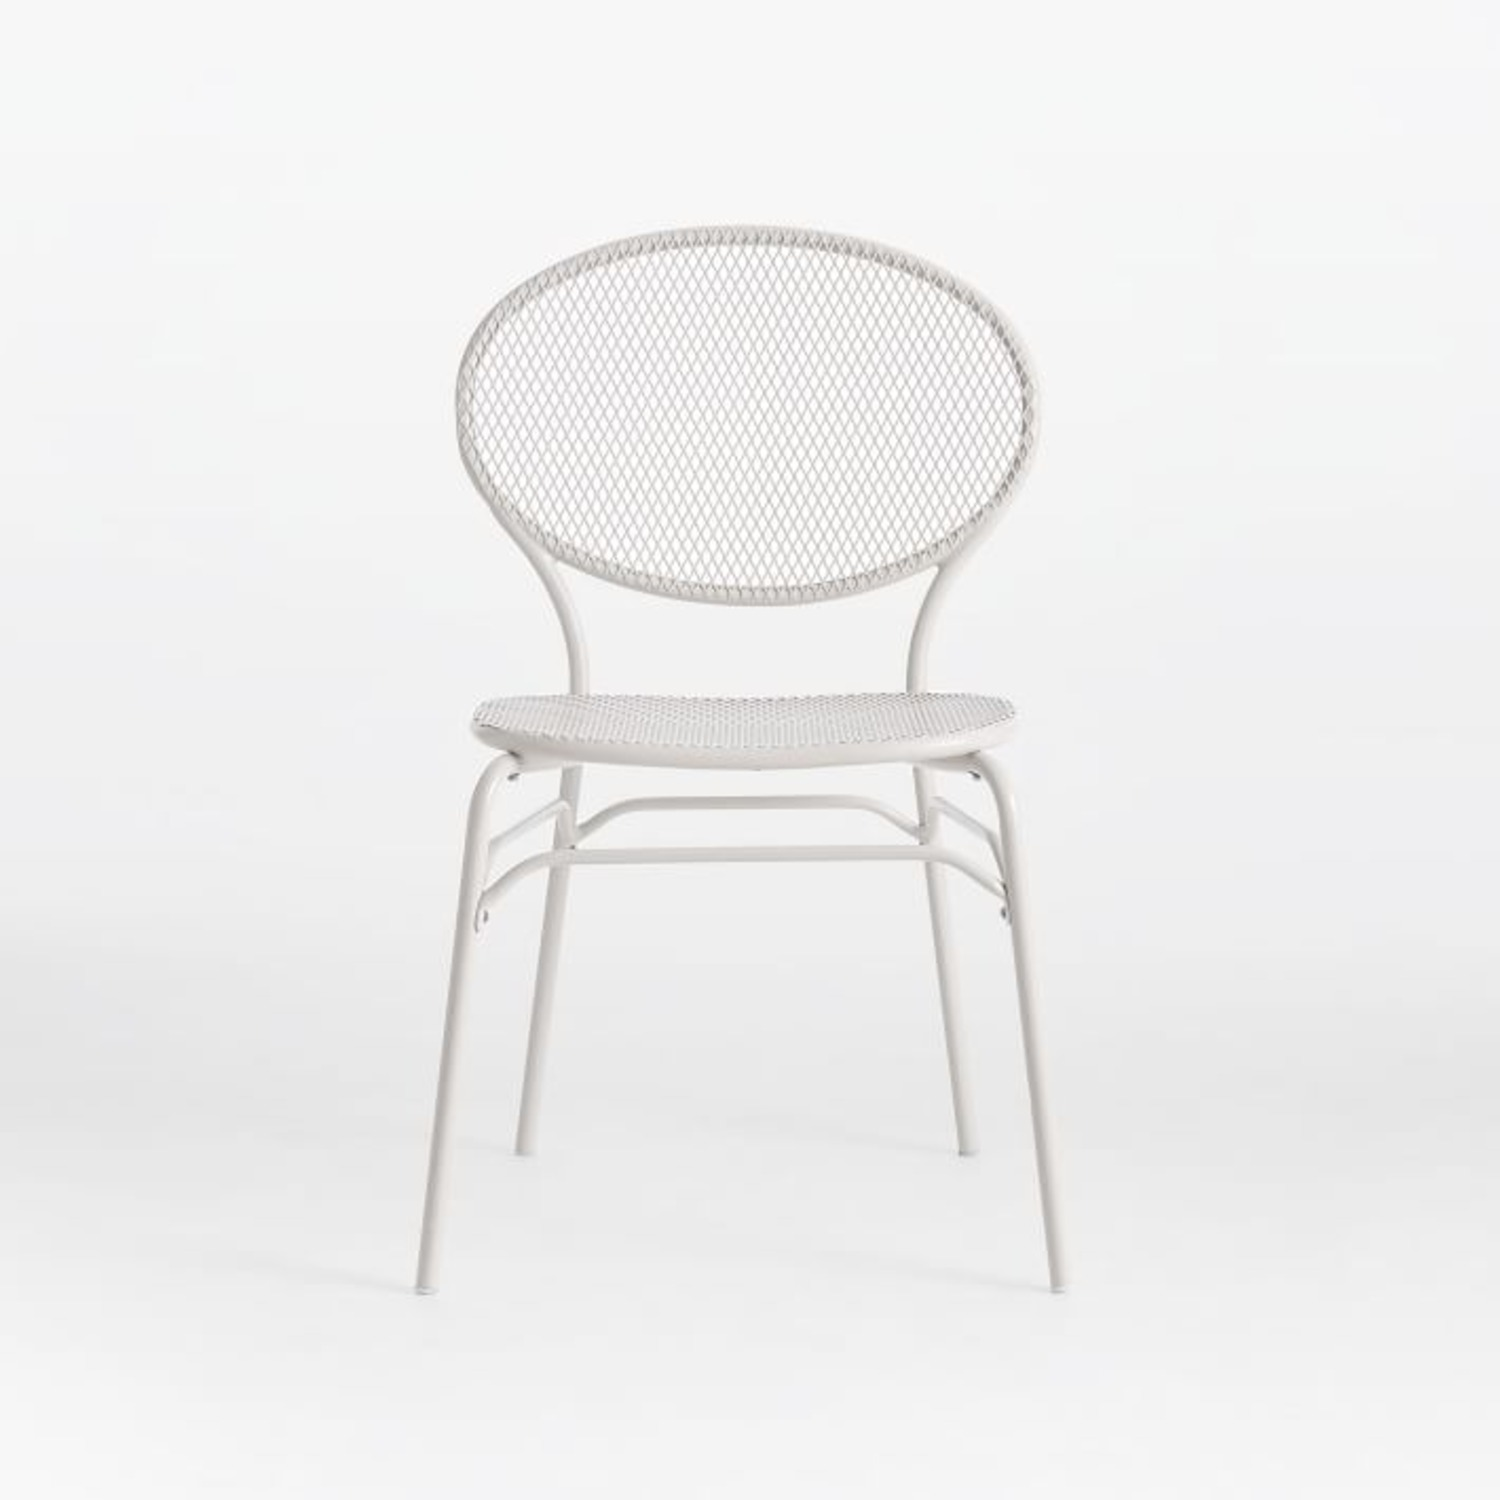 West Elm Kyra Outdoor Bistro Chair - image-3